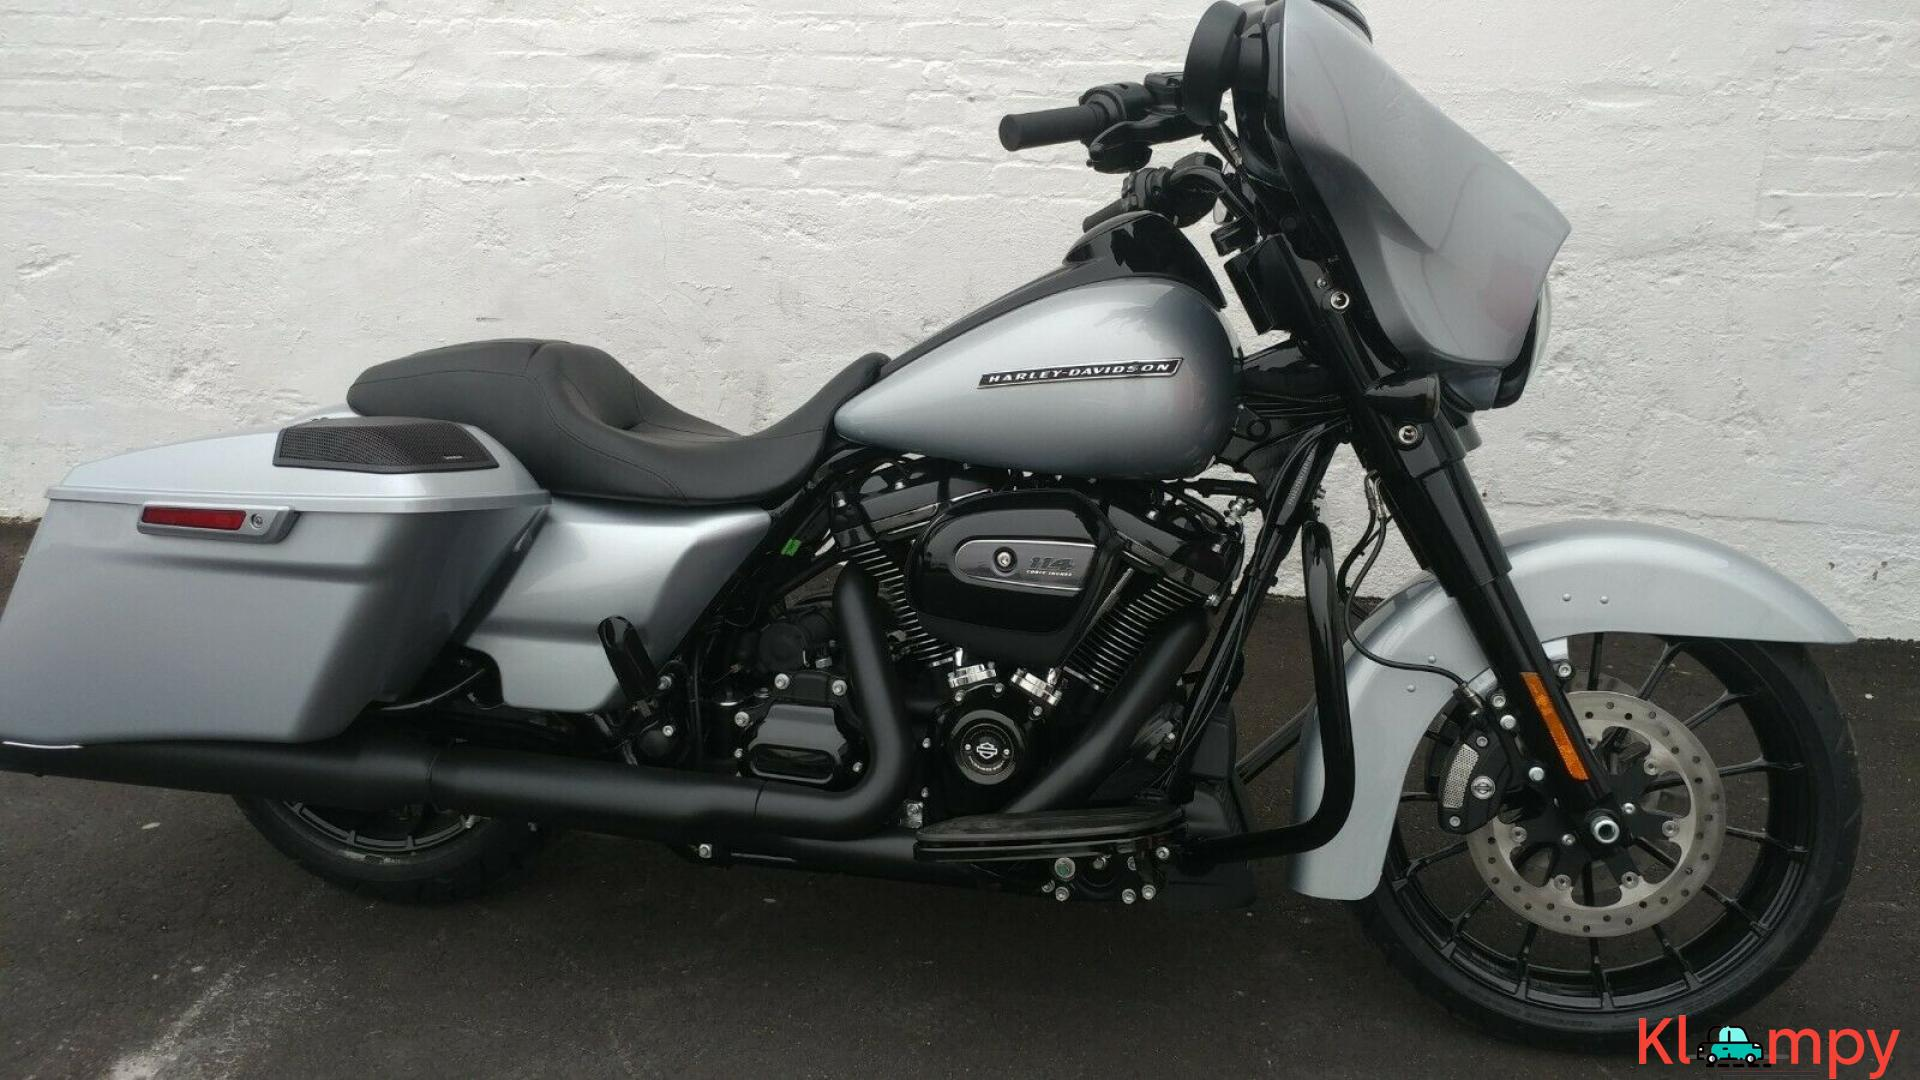 2019 Harley-Davidson Touring Street Glide Special Barracuda - 2/15